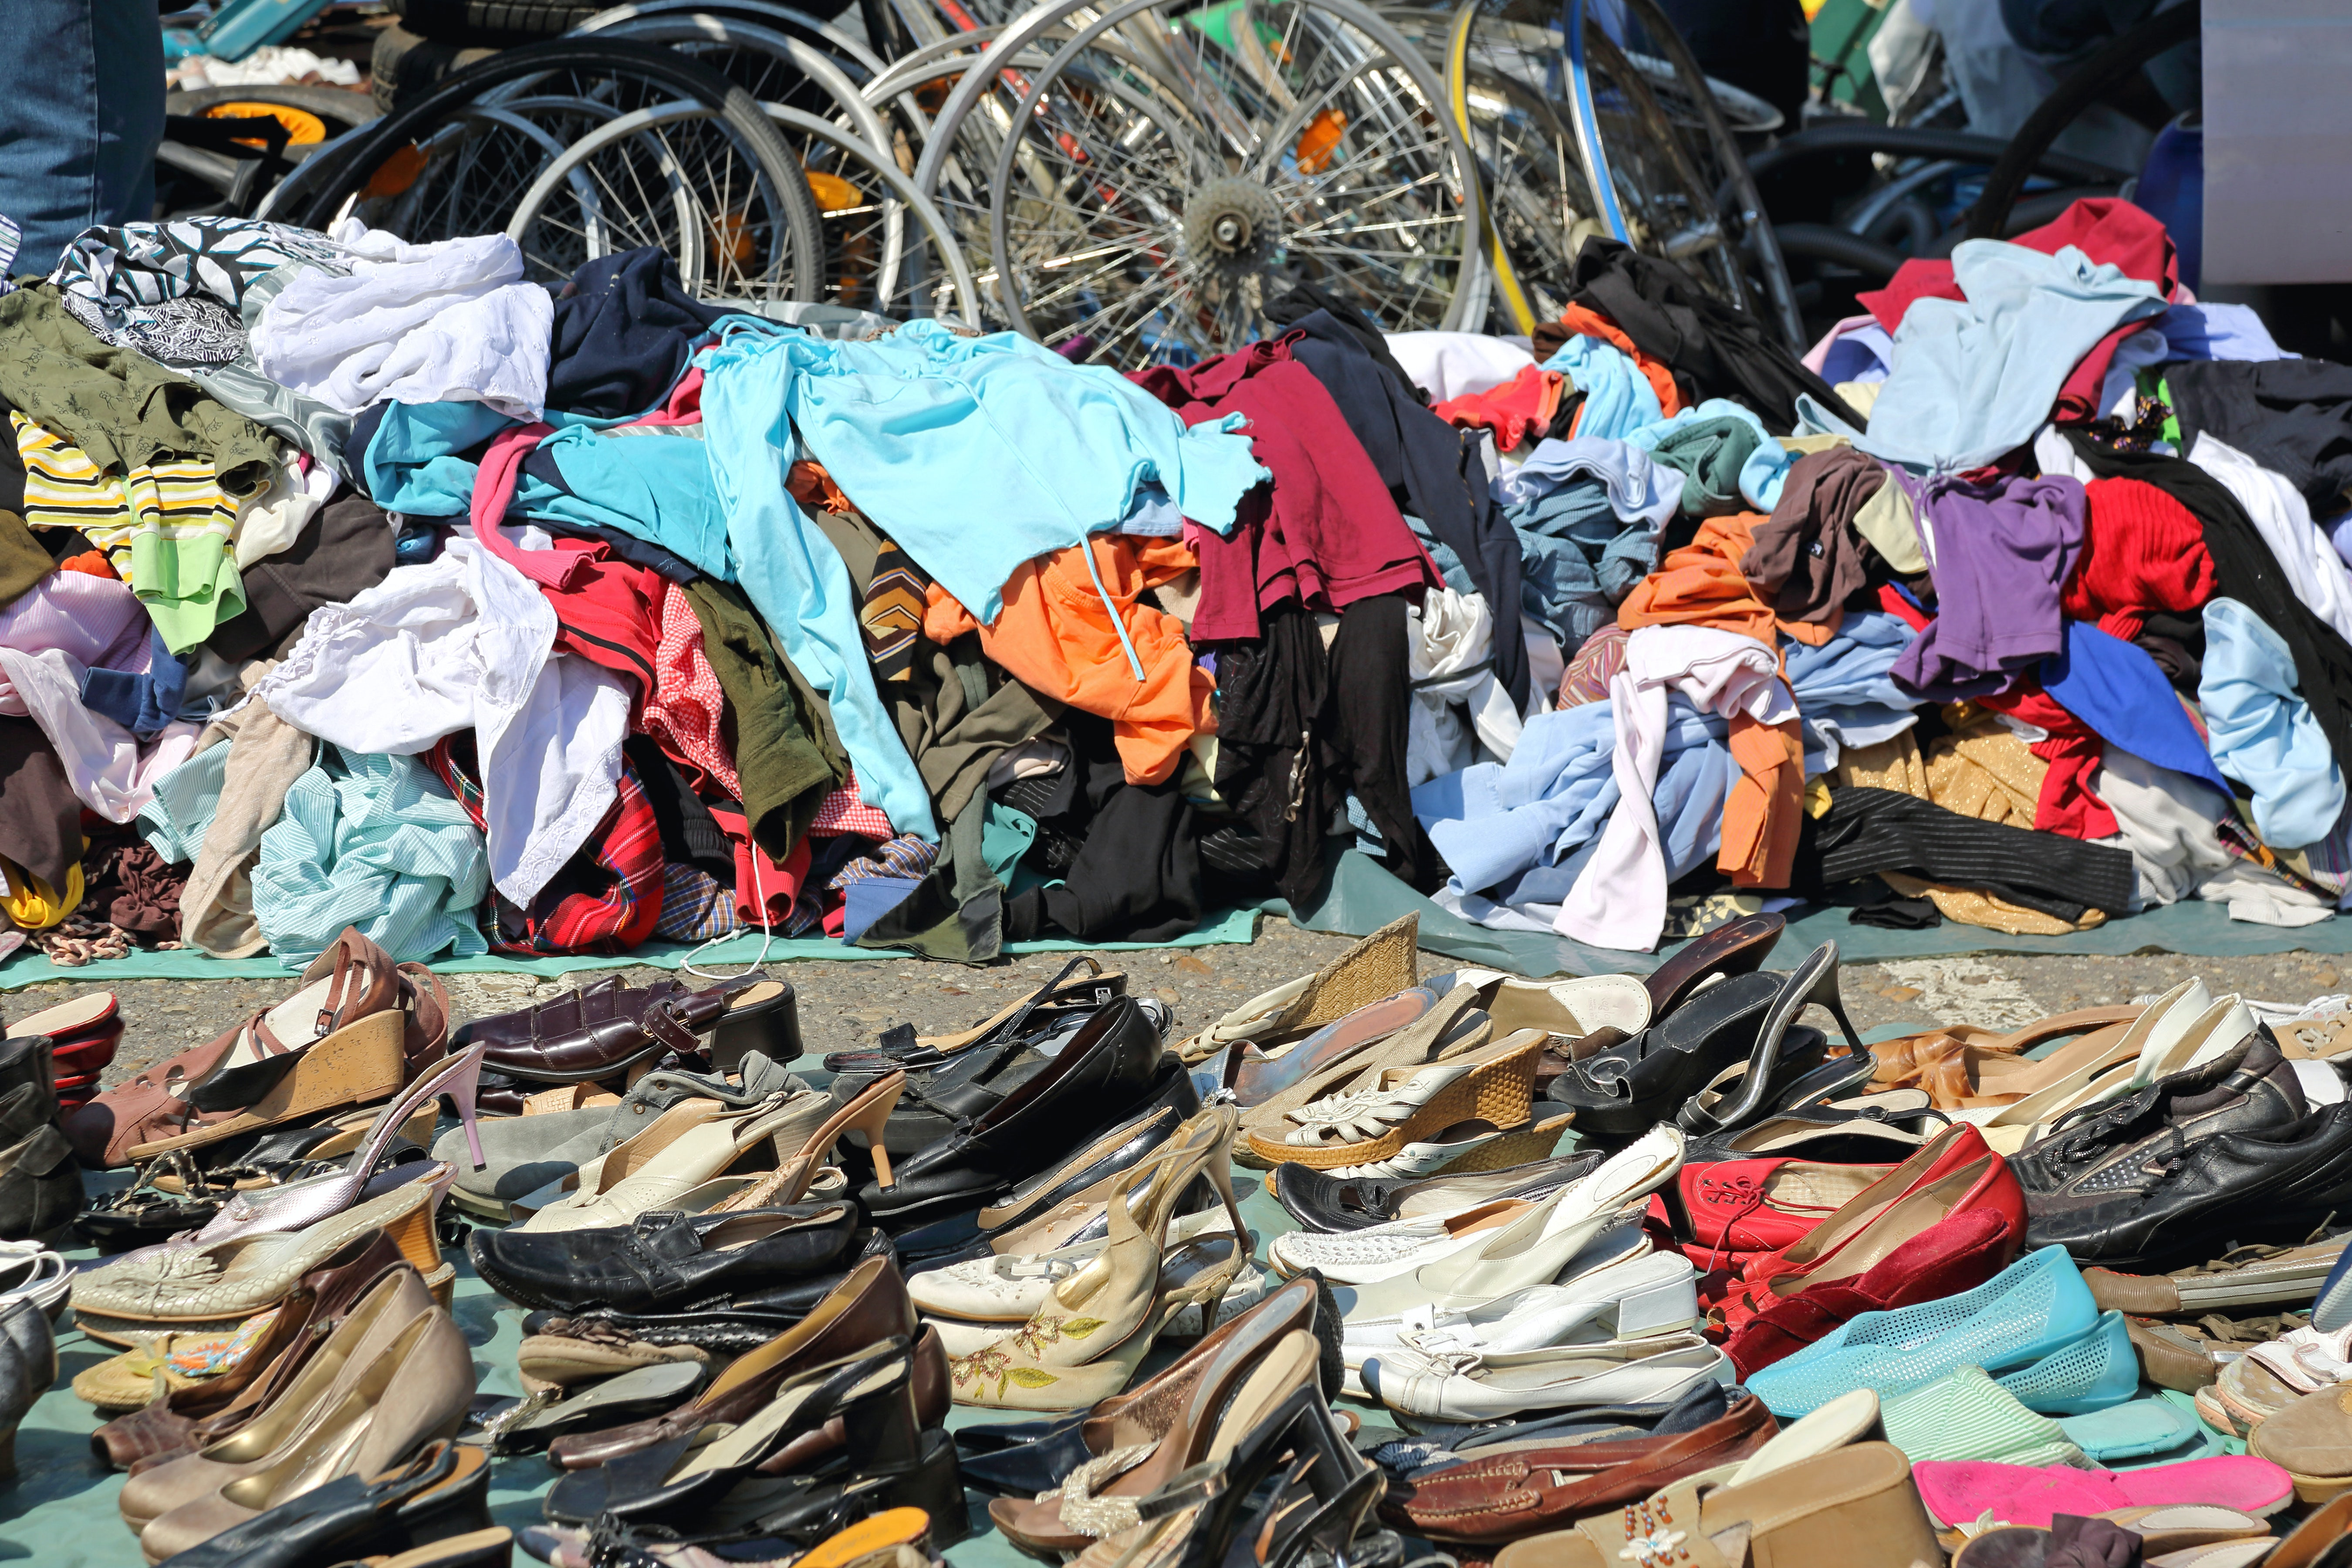 Clothing at a flea market | Source: Shutterstock